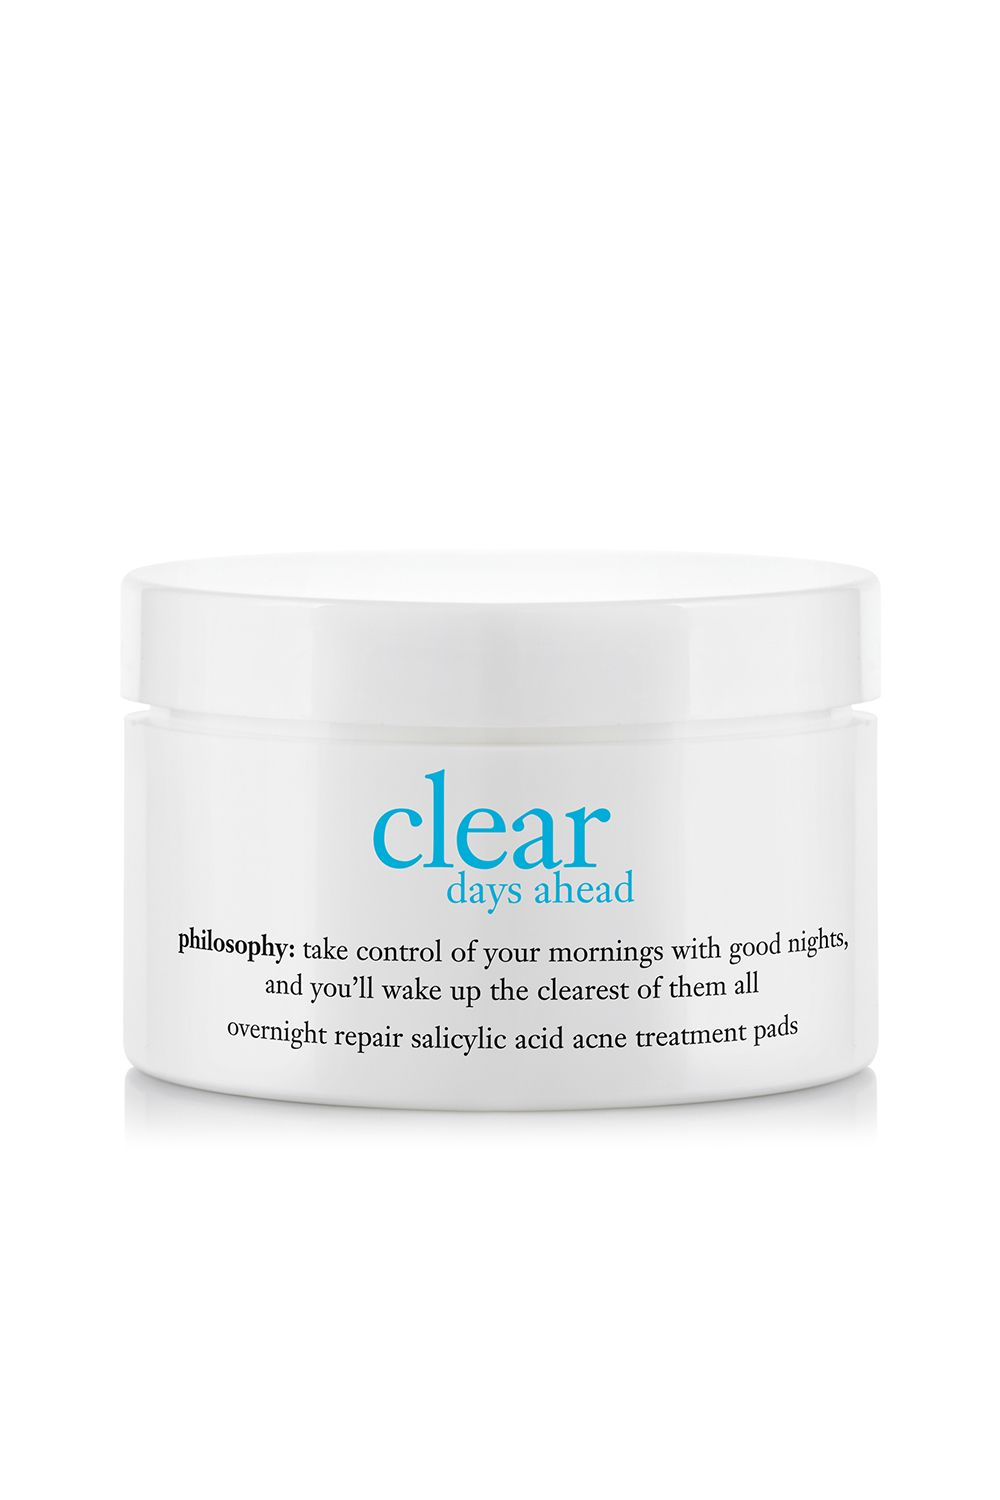 "<p>If your skin tends to itch and shrivel at the slightest mention of acne treatments, these 0.5-percent salicylic acid pads are for you. And don't be put off by the low percentage—they're also formulated with skin-clearing mandelic acid and glycolic acid for a triple acne-killing boost.</p><p><i data-redactor-tag=""i"">Philosophy Clear Days Ahead Overnight Repair Treatment Pads, $42</i></p><p><strong data-redactor-tag=""strong"">BUY IT:&nbsp&#x3B;<a href=""http://www.sephora.com/clear-days-ahead-overnight-repair-salicylic-acid-acne-treatment-pads-P312003?"">sephora.com</a>.&nbsp&#x3B;</strong></p>"